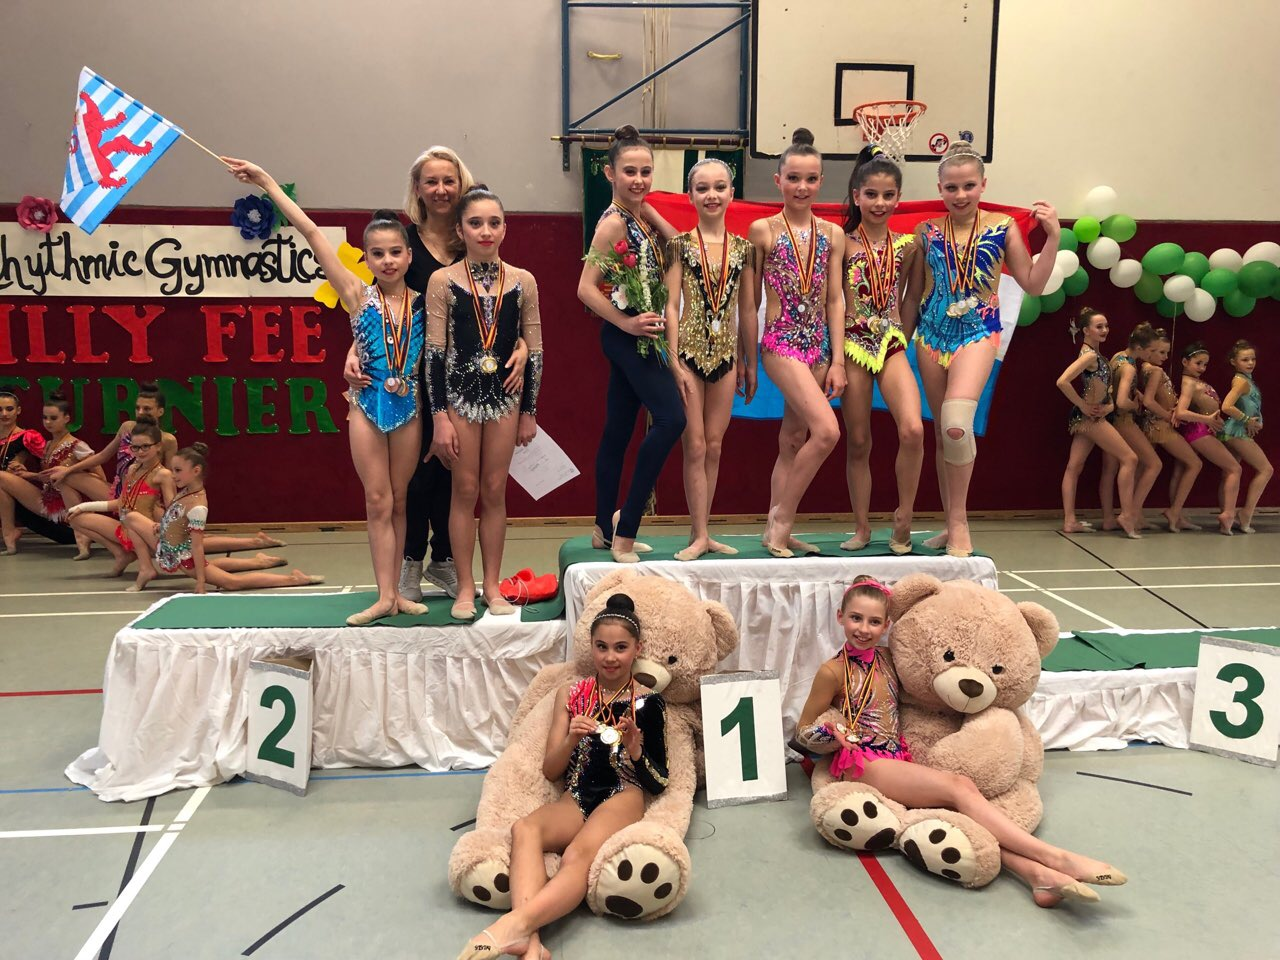 Lilly Fee Cup – Paderborn